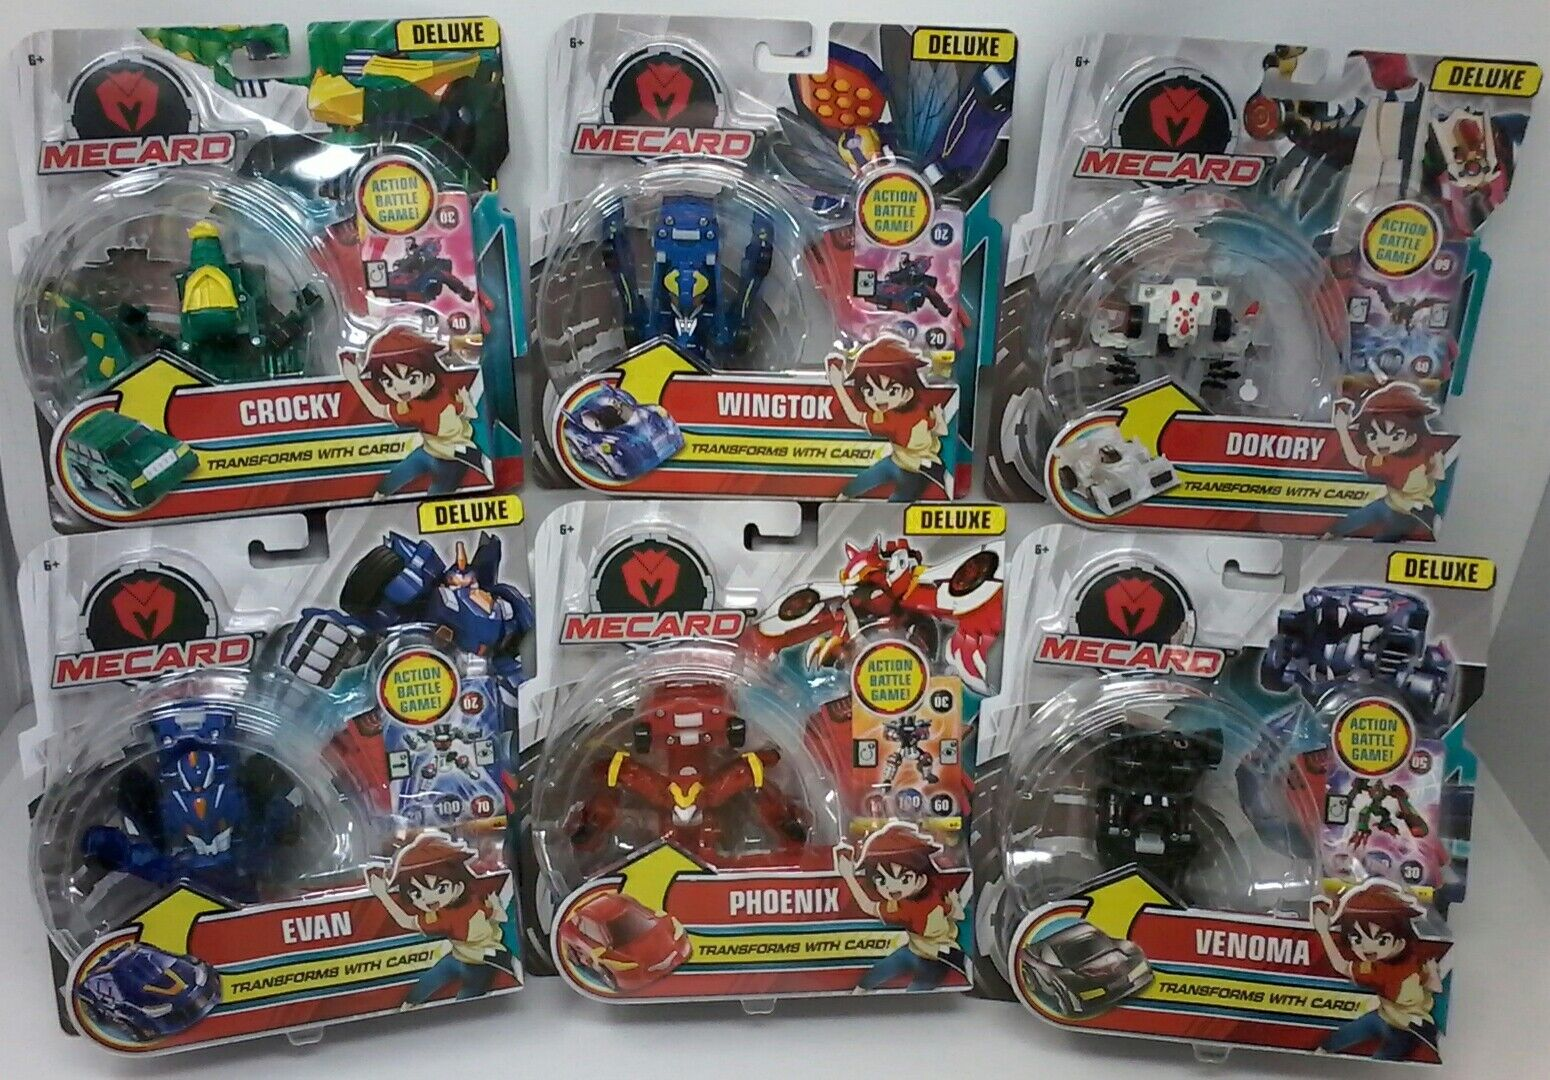 Mecard Action Battle Game  Deluxe Transforming Figures (Set of 6)